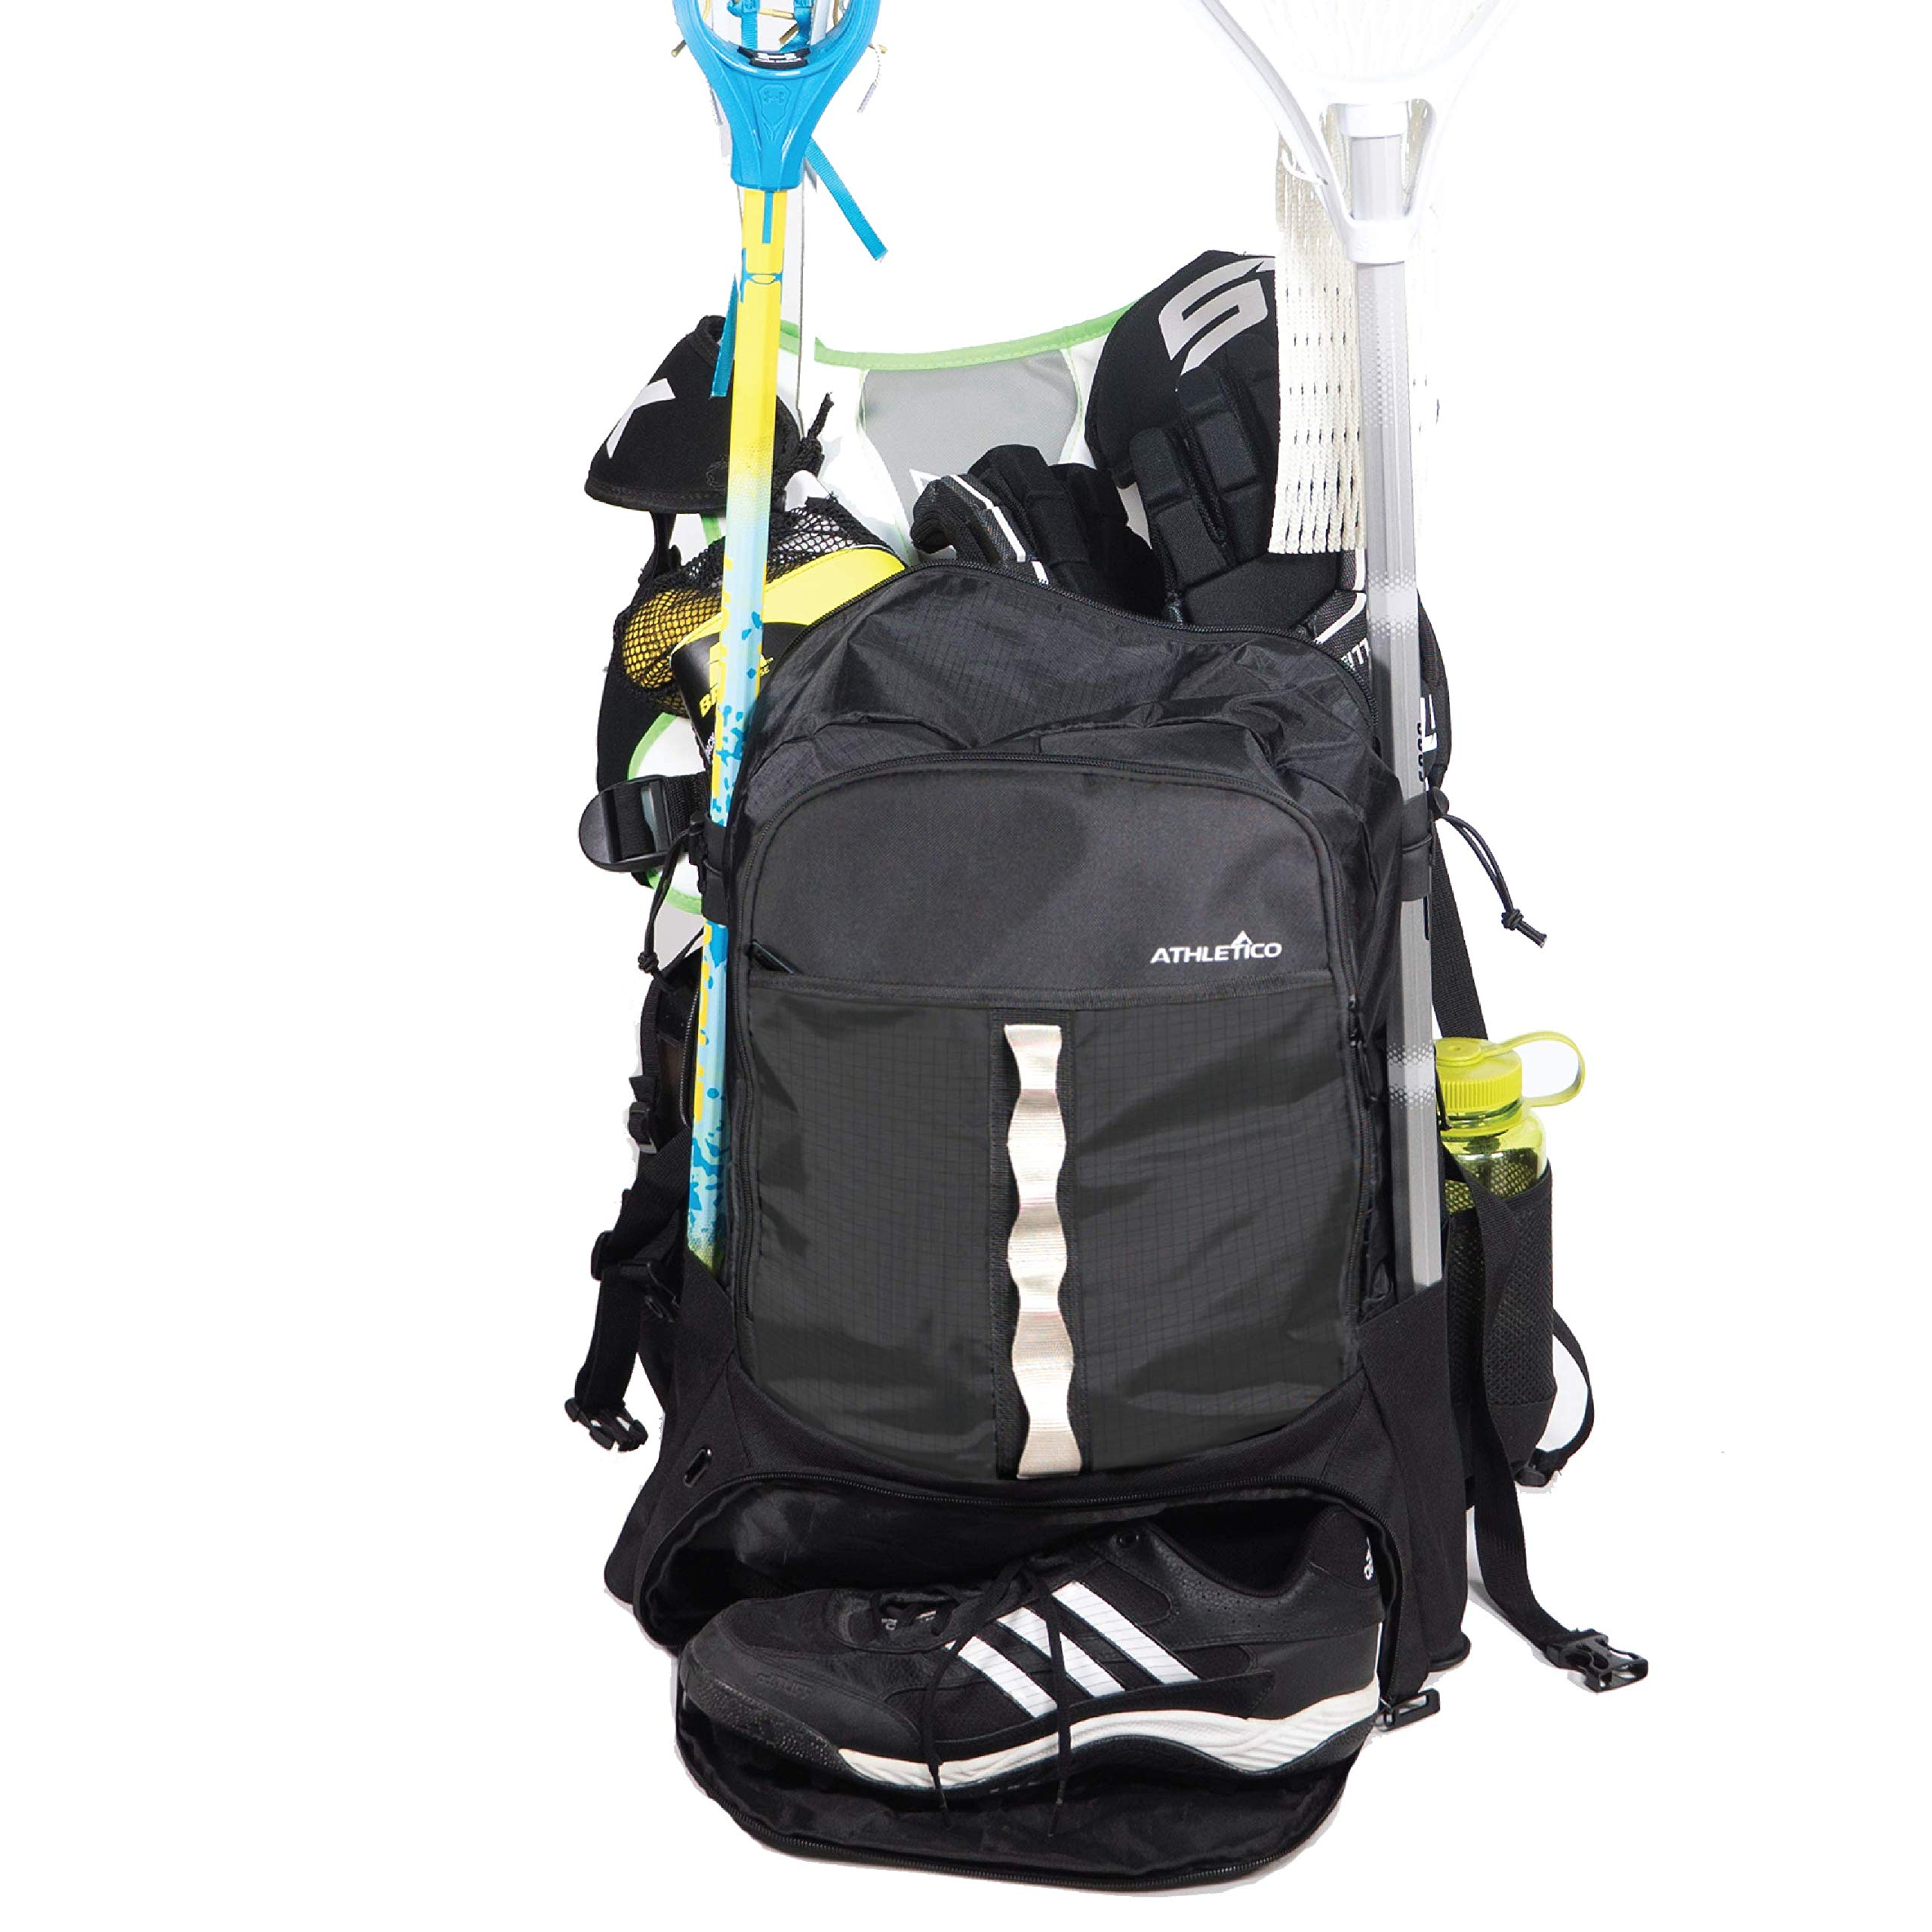 7fa92cad2de Athletico Lacrosse Bag - Extra Large Lacrosse Backpack - Holds All Lacrosse  or Field Hockey Equipment - Two Stick Holders and Separate Cleats  Compartment